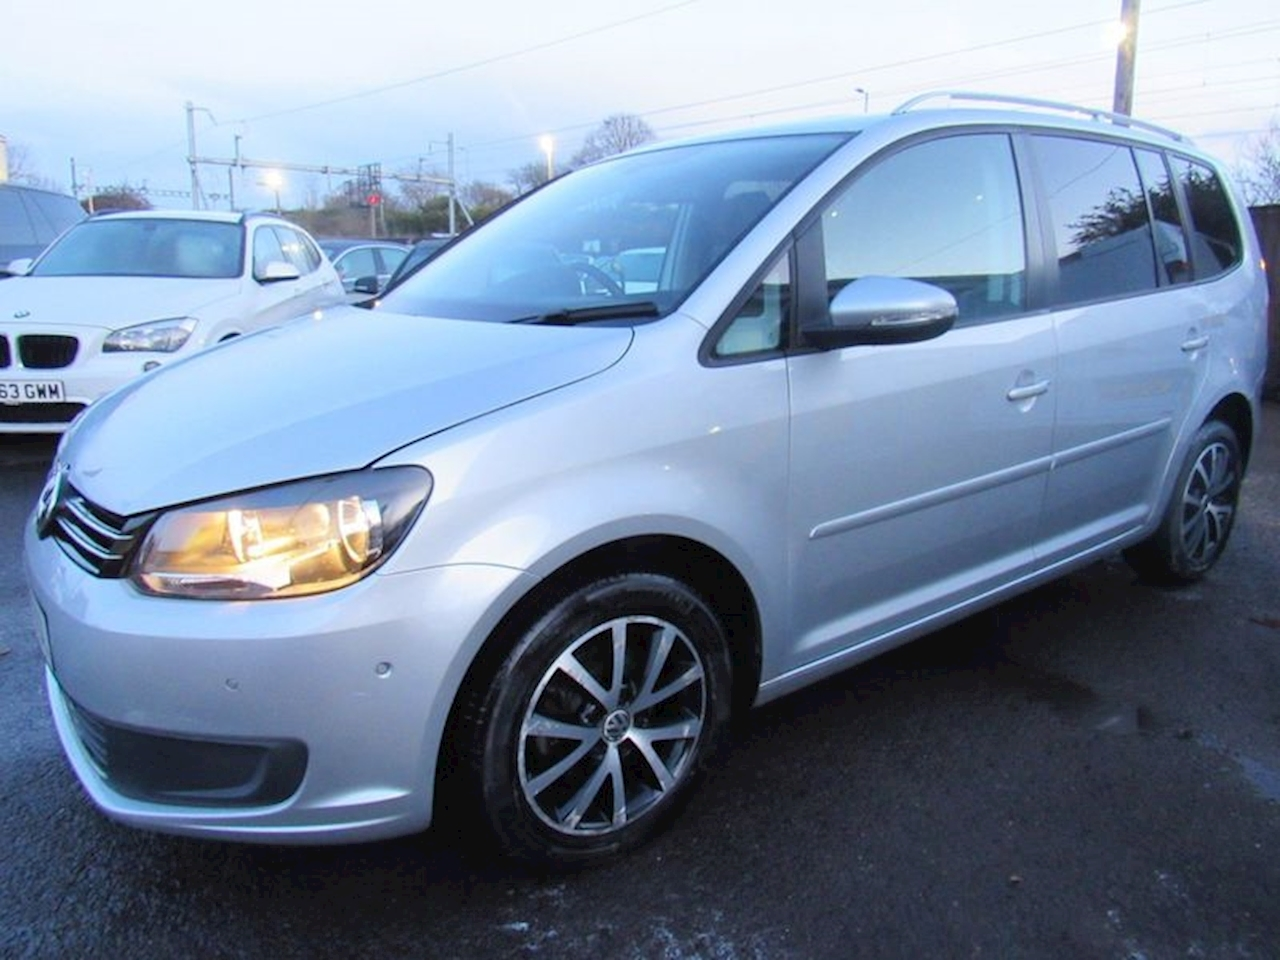 Volkswagen Touran Se Tdi Bluemotion Technology Mpv 1.6 Manual Diesel